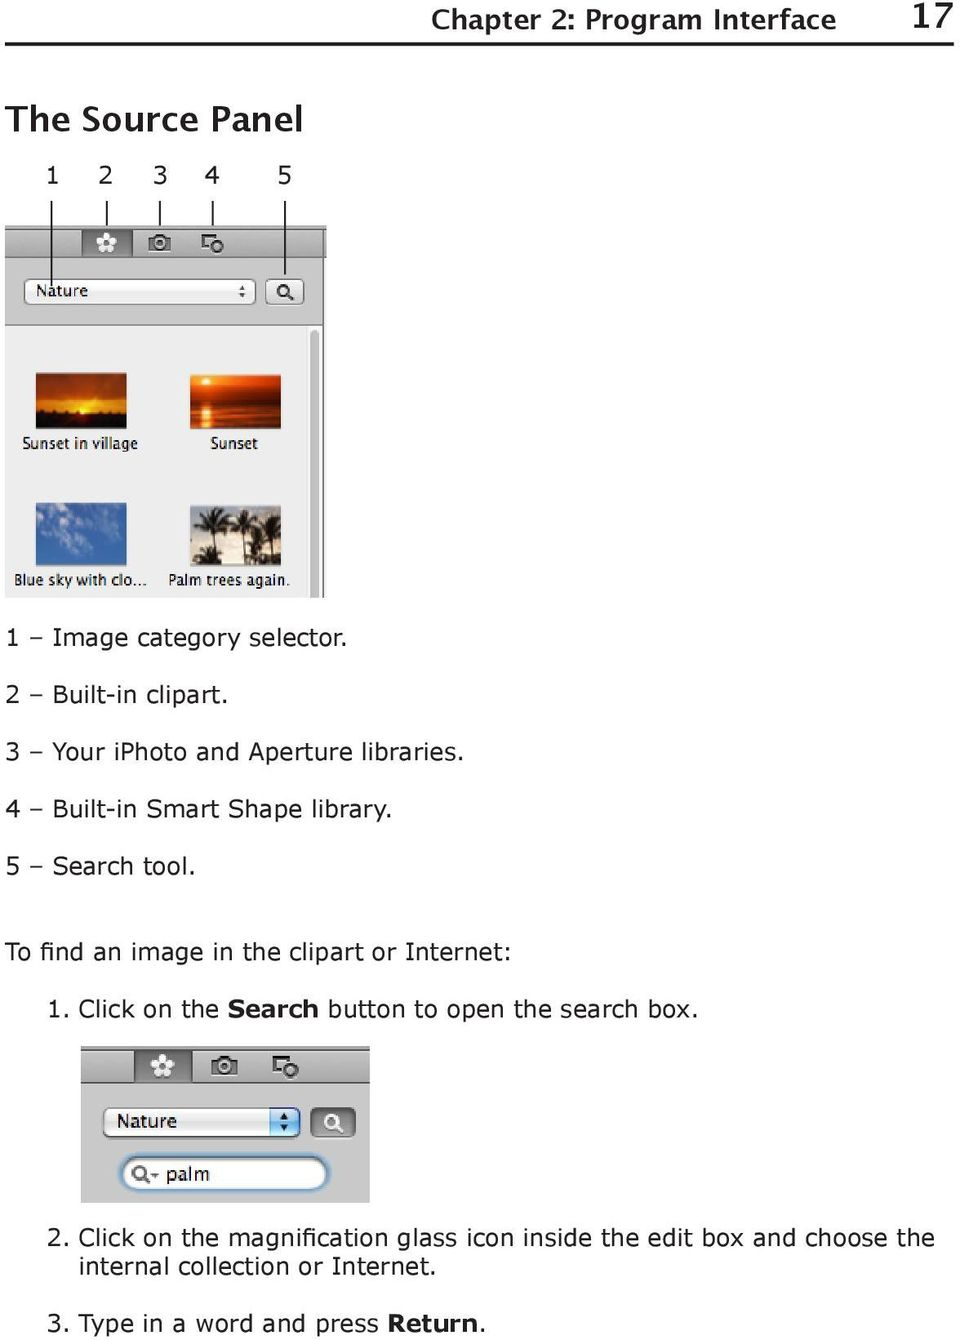 To find an image in the clipart or Internet: 1. Click on the Search button to open the search box. 2.